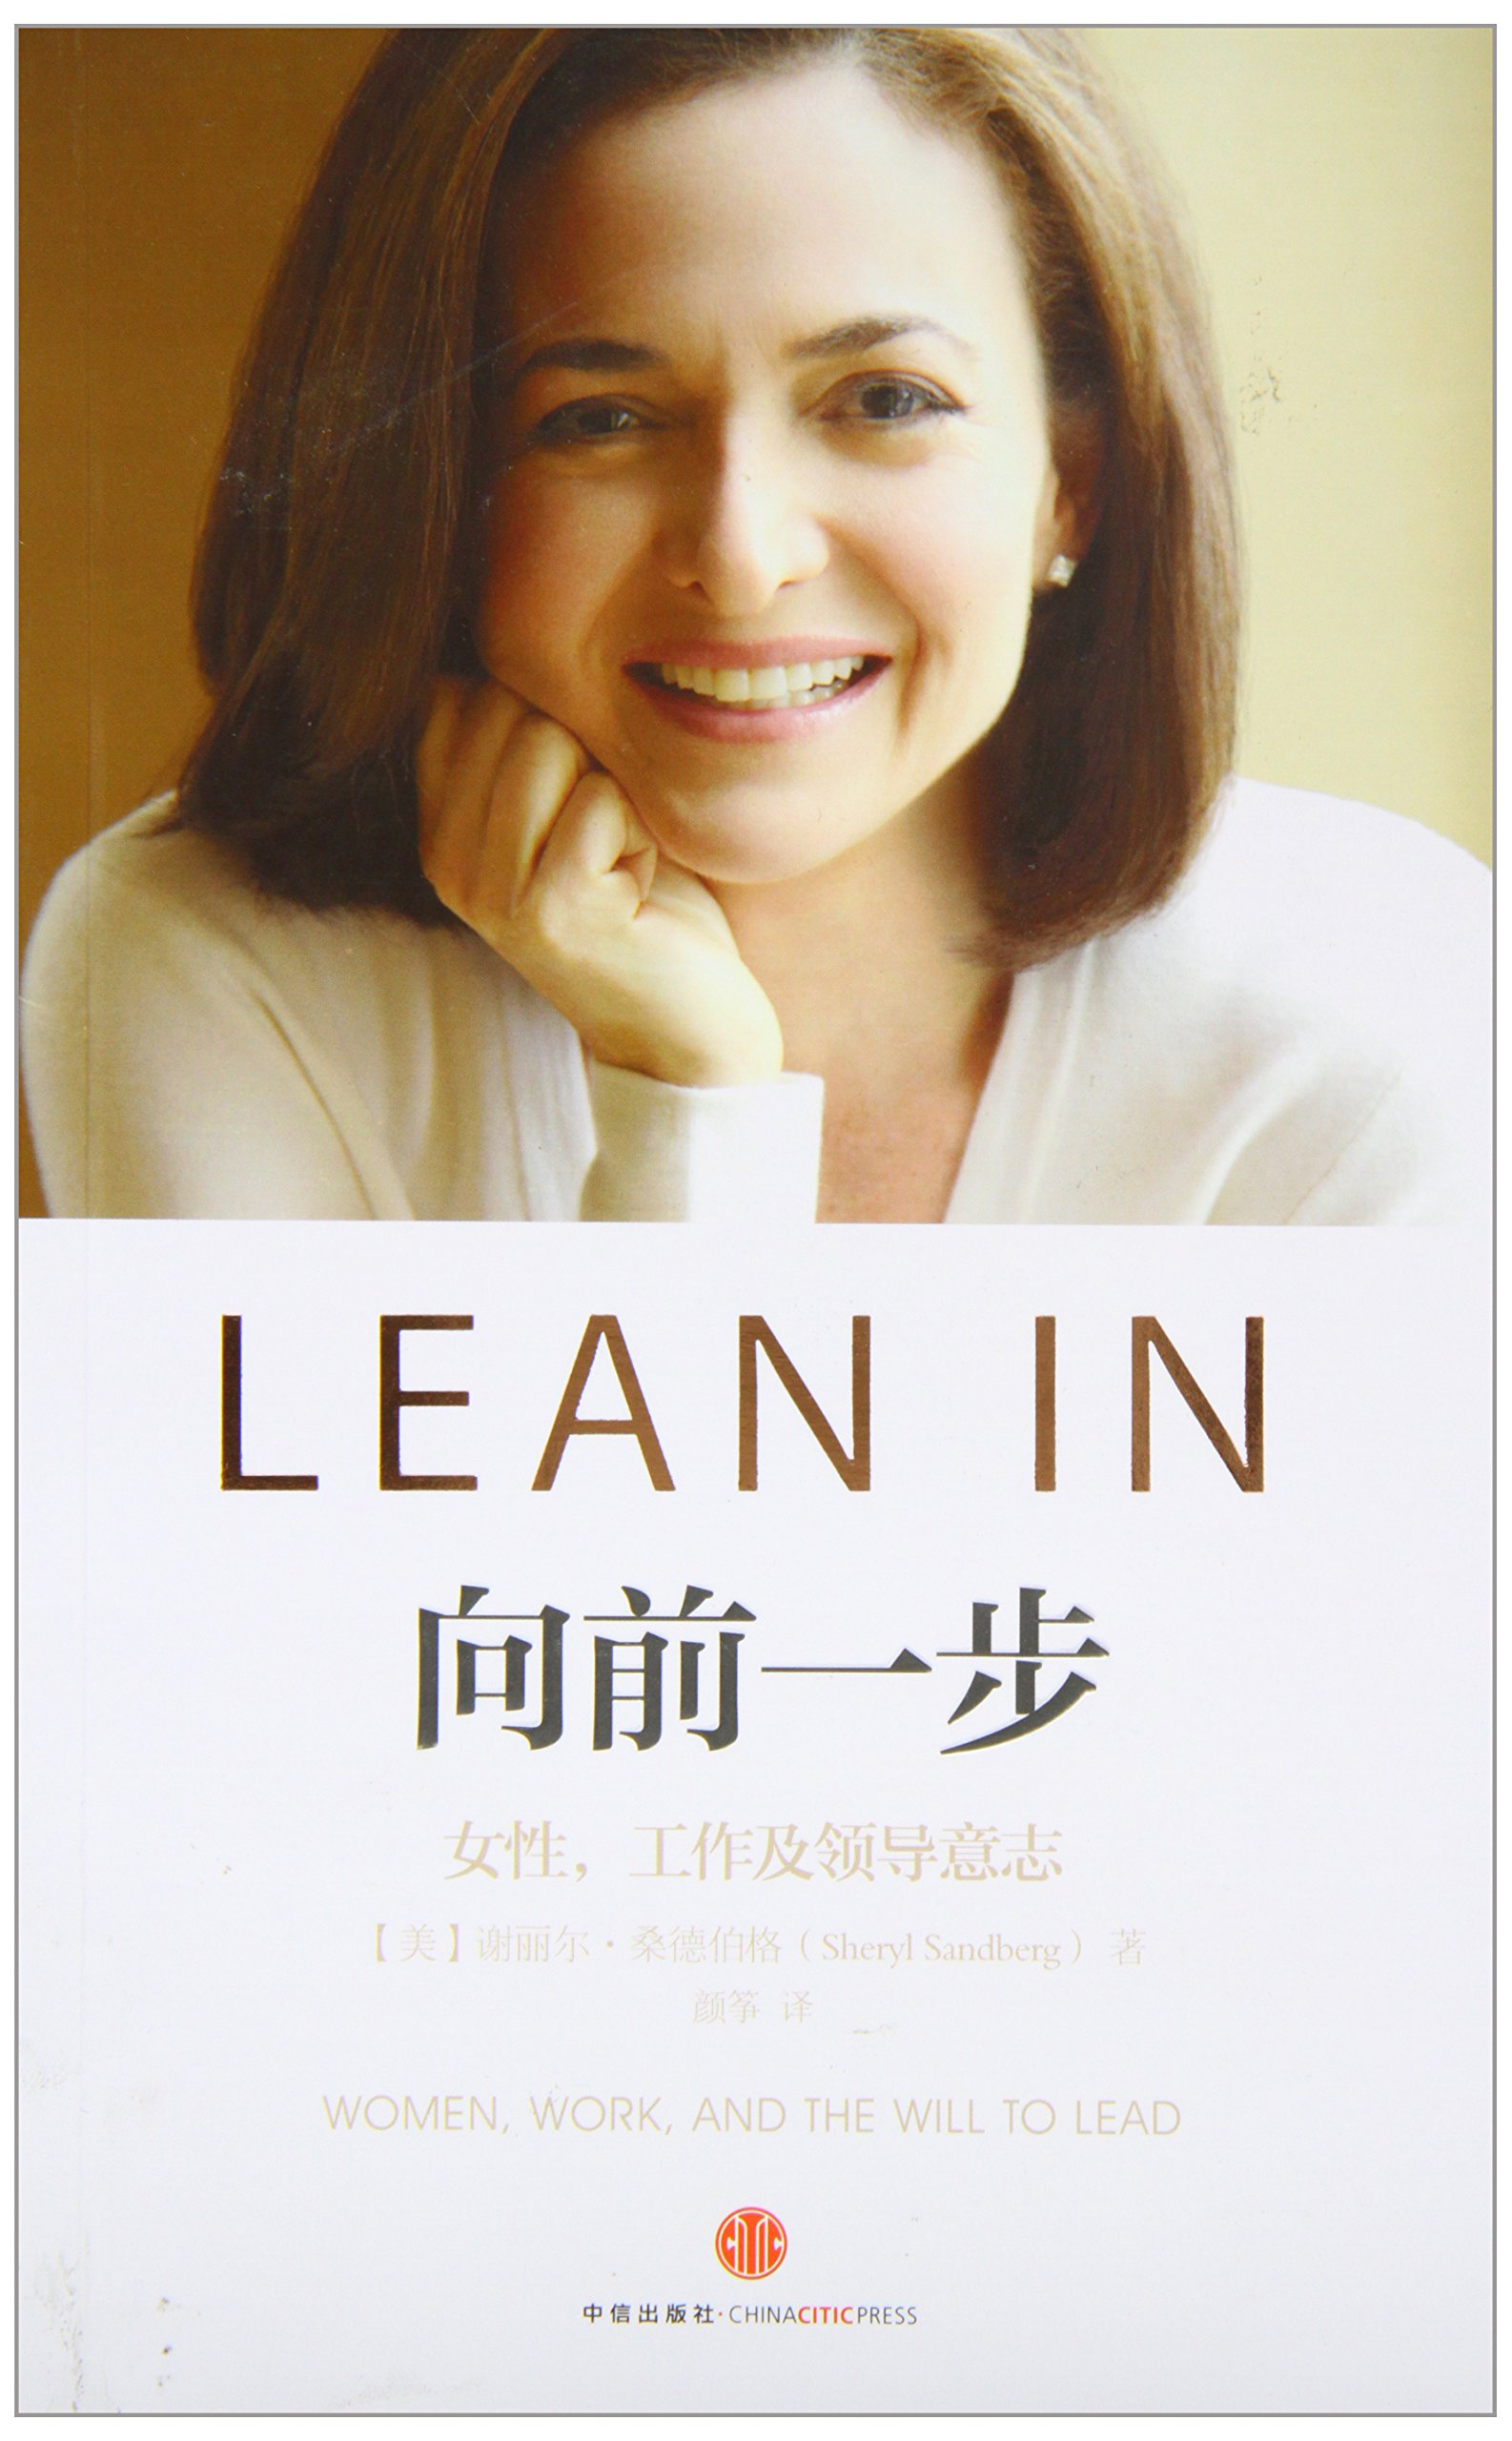 Lean in: Women, Work, and the Will to Lead (Chinese Edition) pdf epub